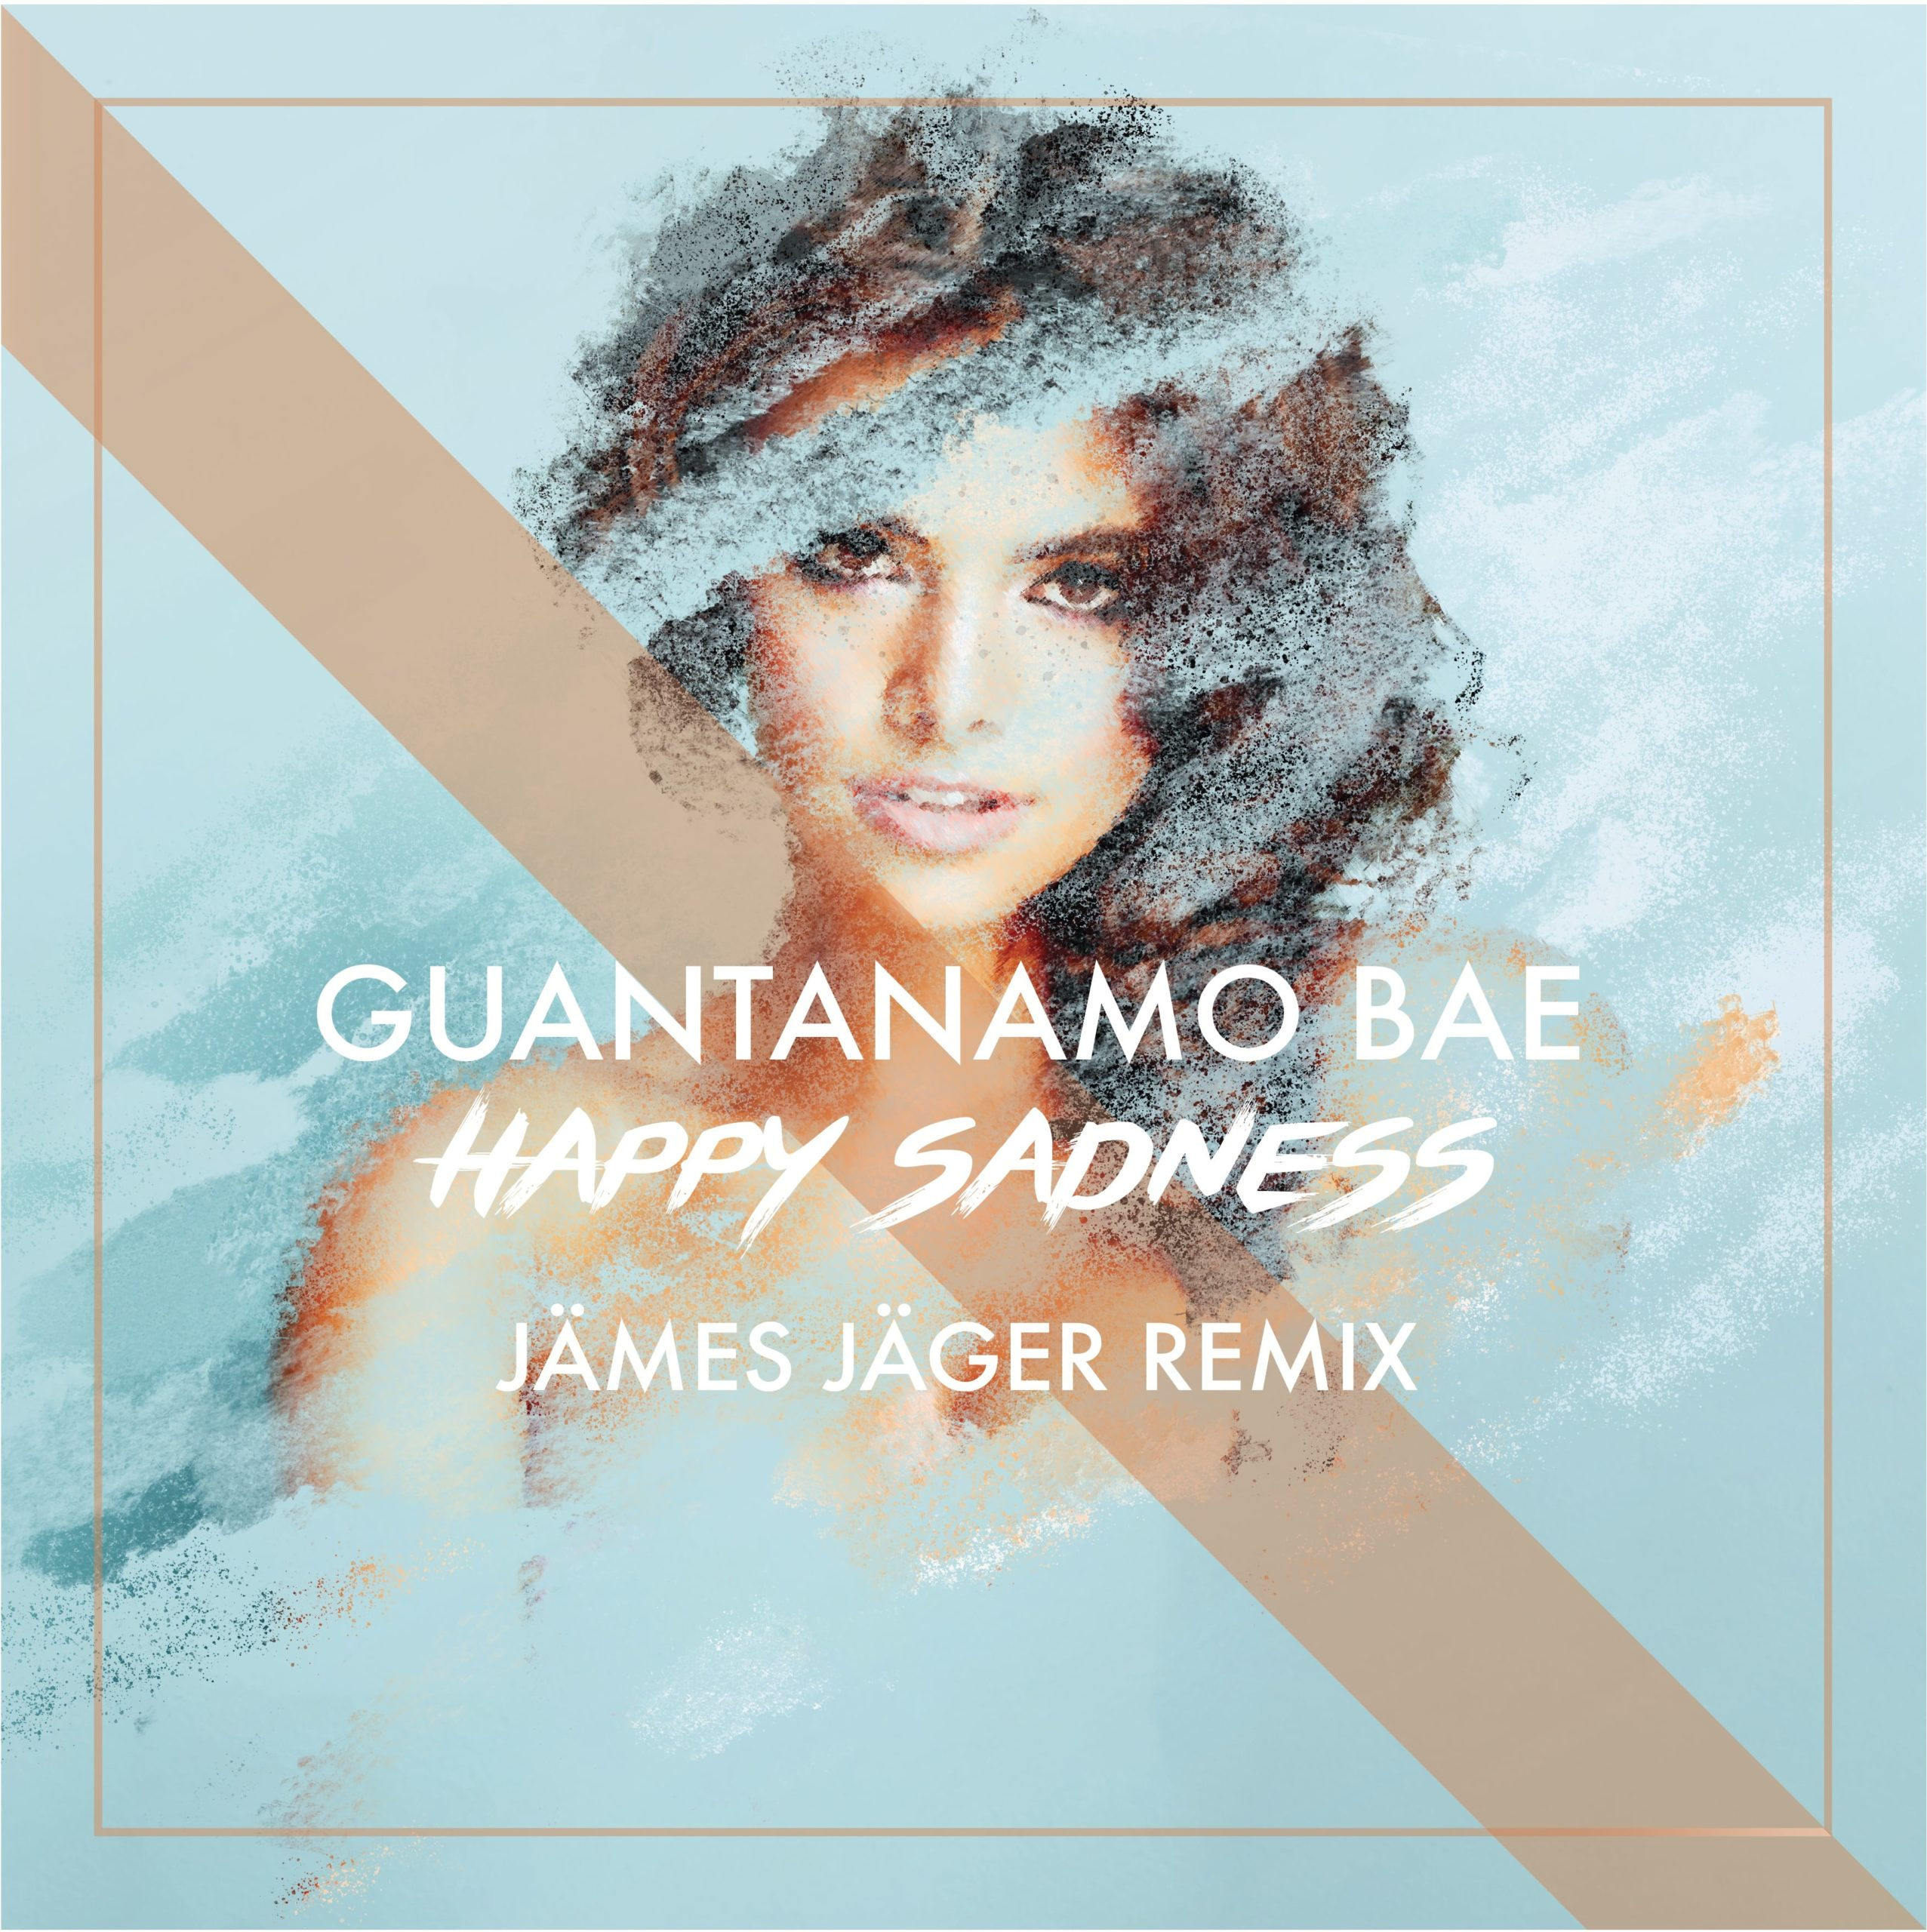 Guantanomo Bae – Happy Sadness (James Jager Remix) is a Song For The Summer! INTERVIEW